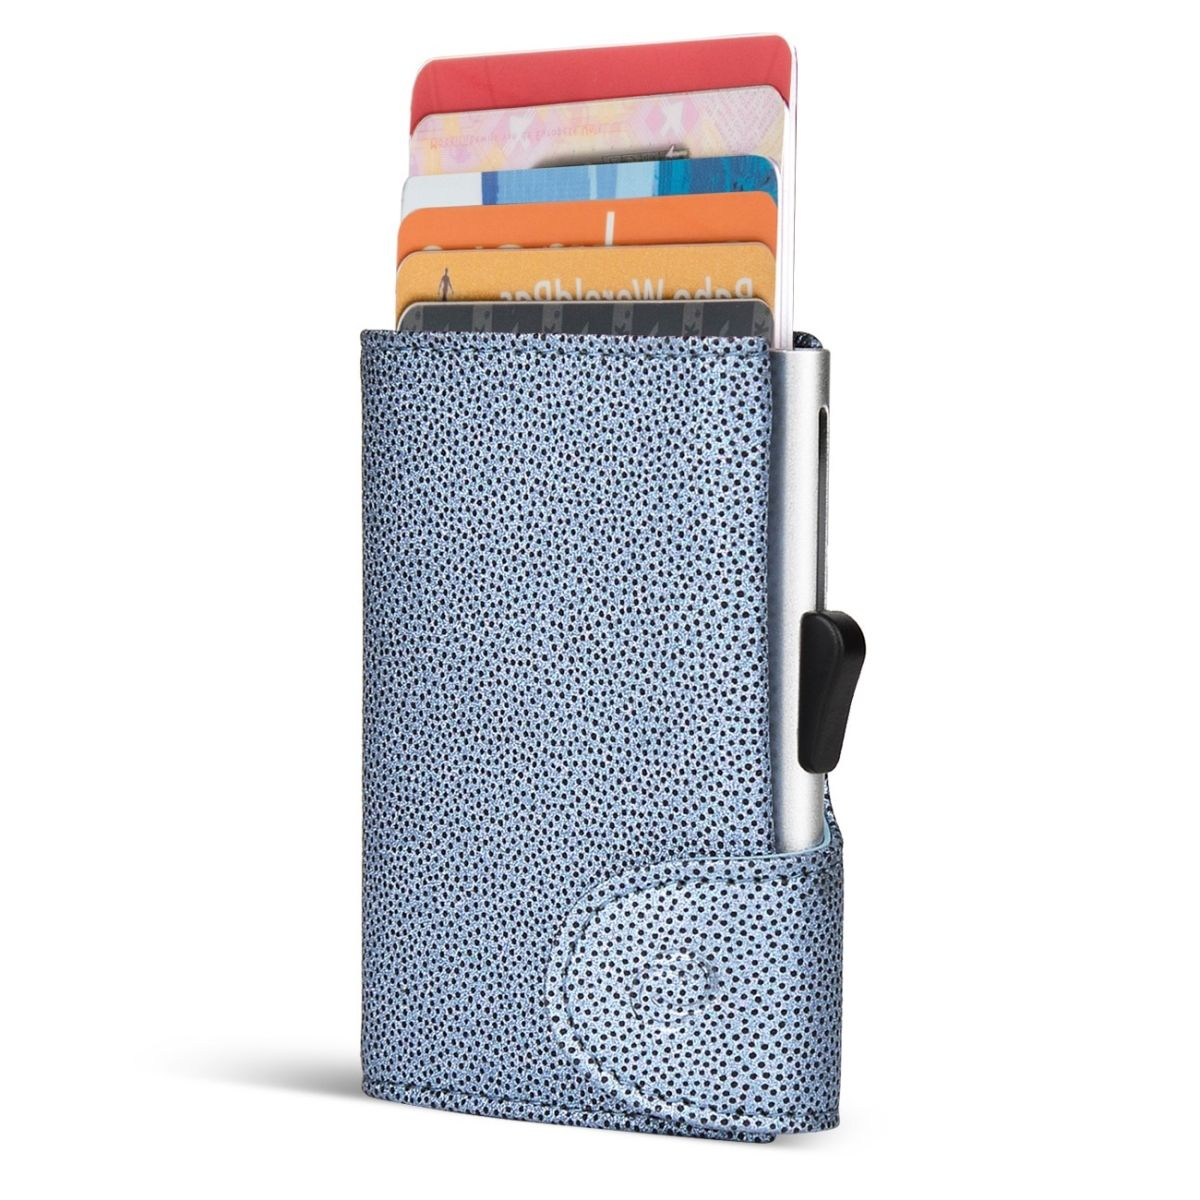 C-Secure Aluminum Card Holder with Genuine Leather - Fashion Blue